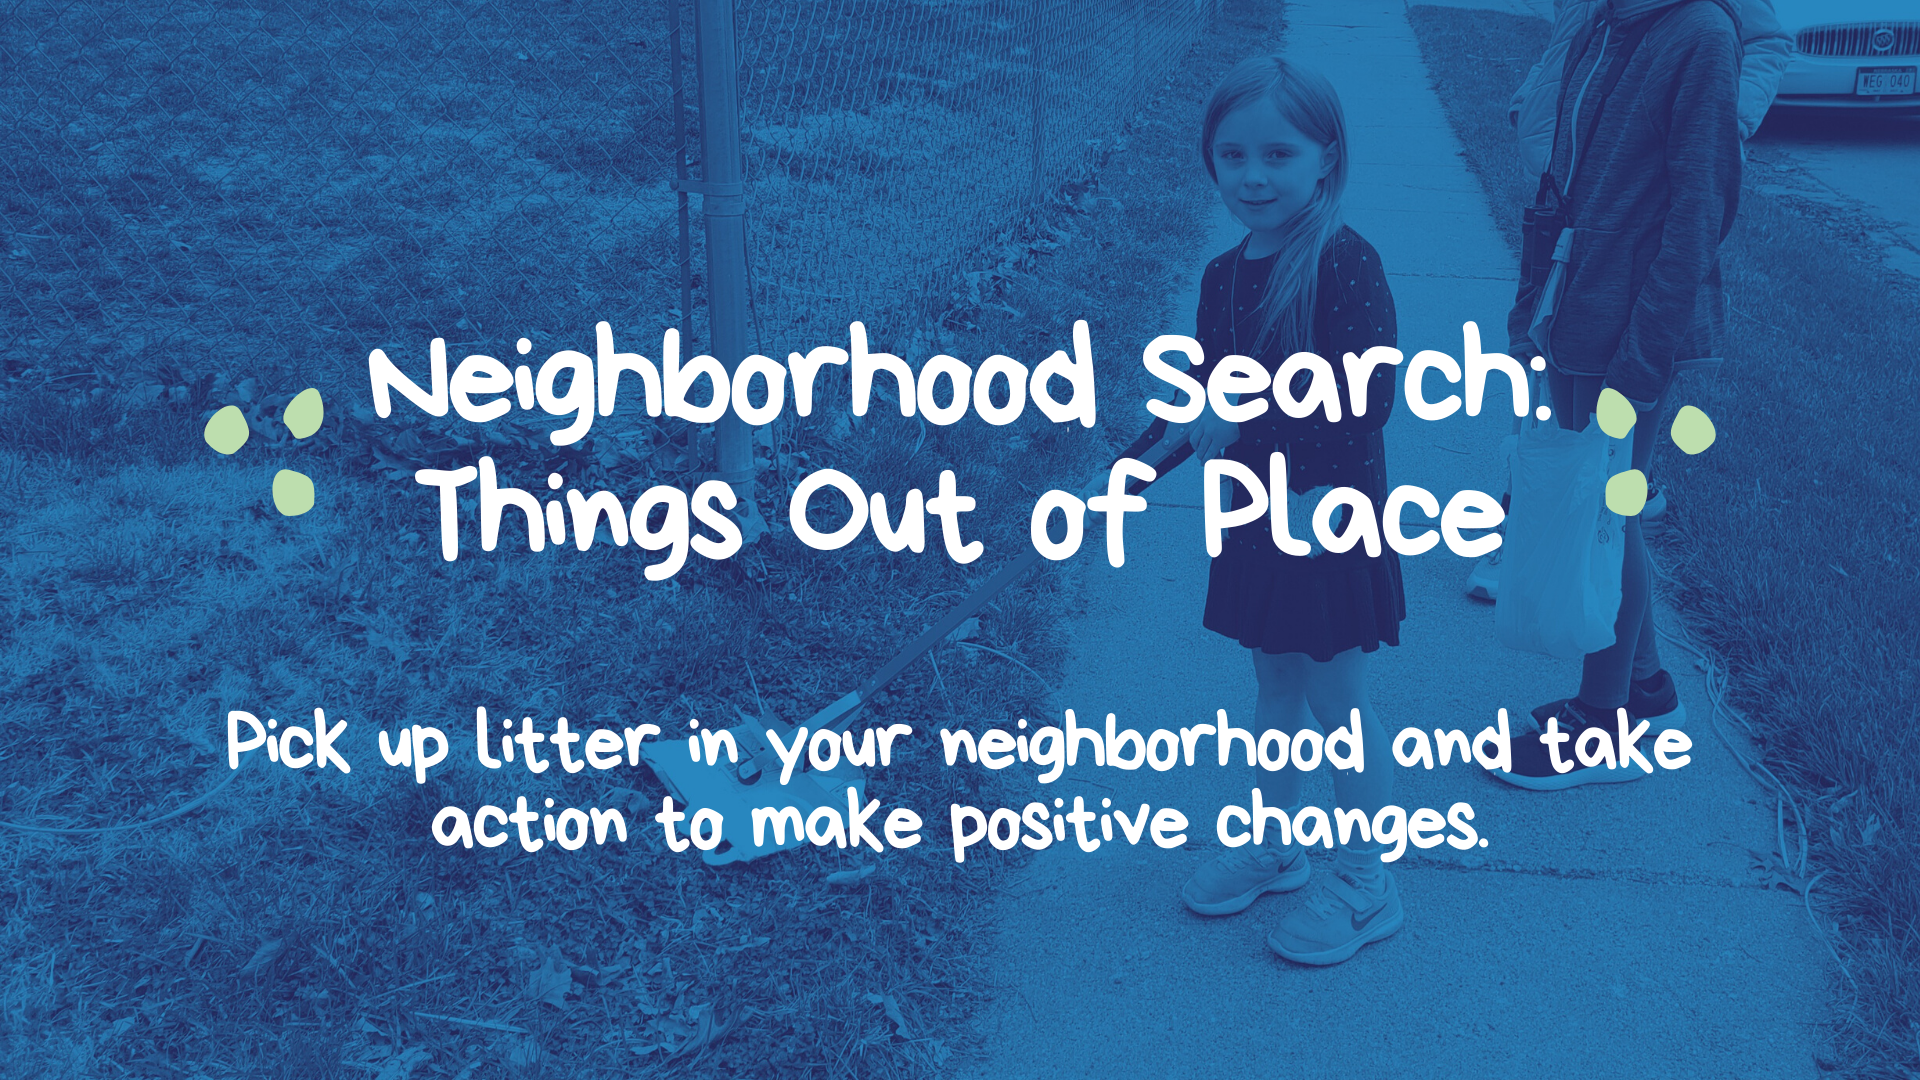 Neighborhood Search: Things Out of Place